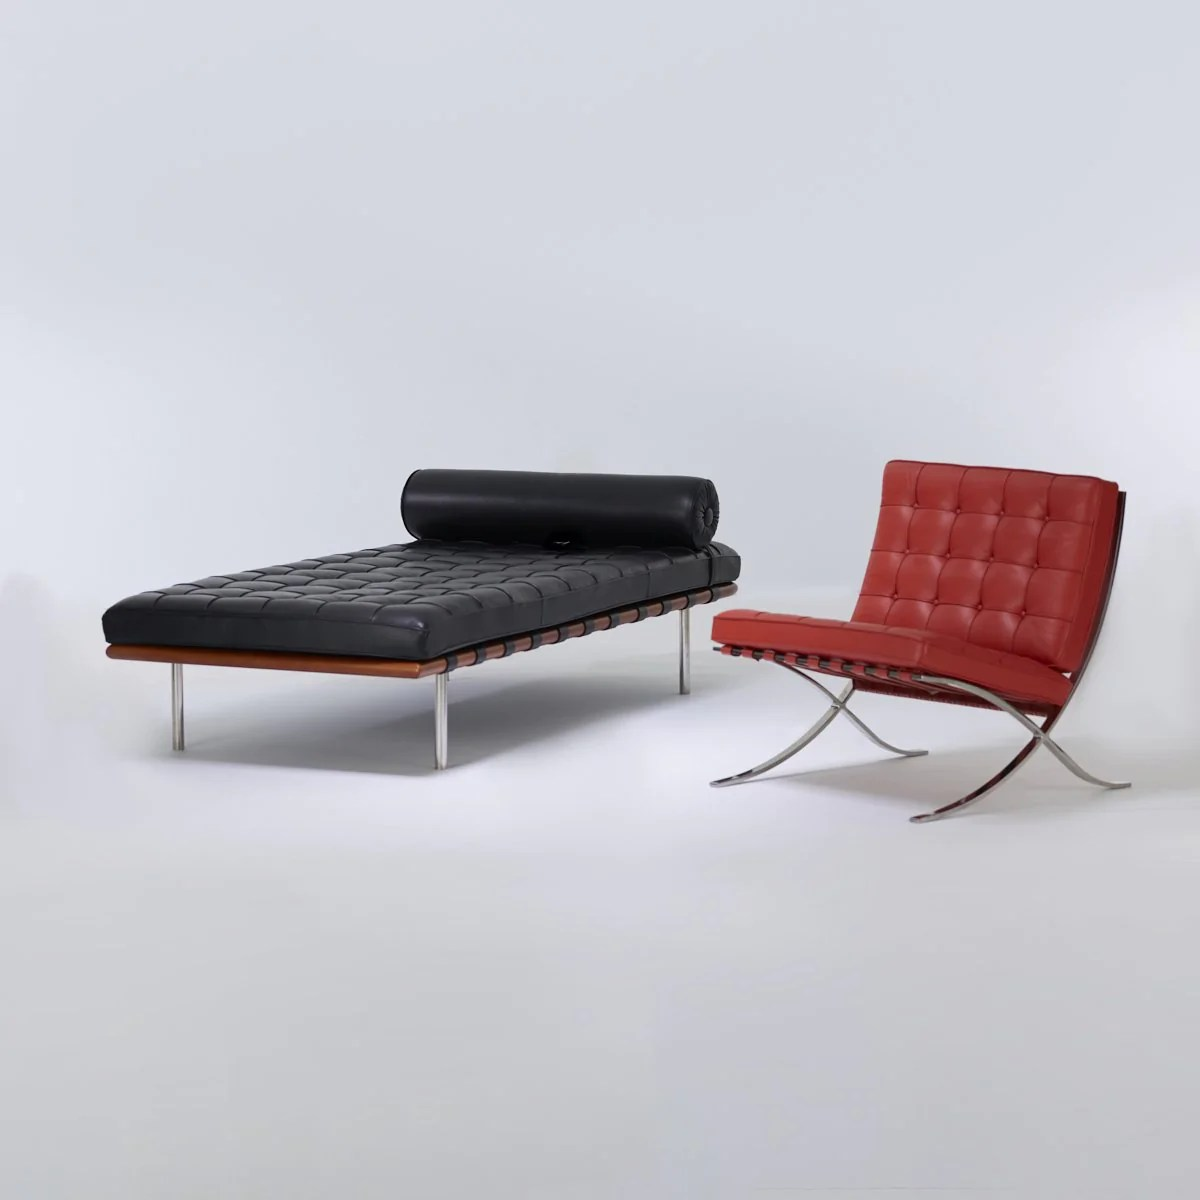 Barcelona Daybed Ludwig Mies Van Der Rohe Barcelona Daybed For Knoll